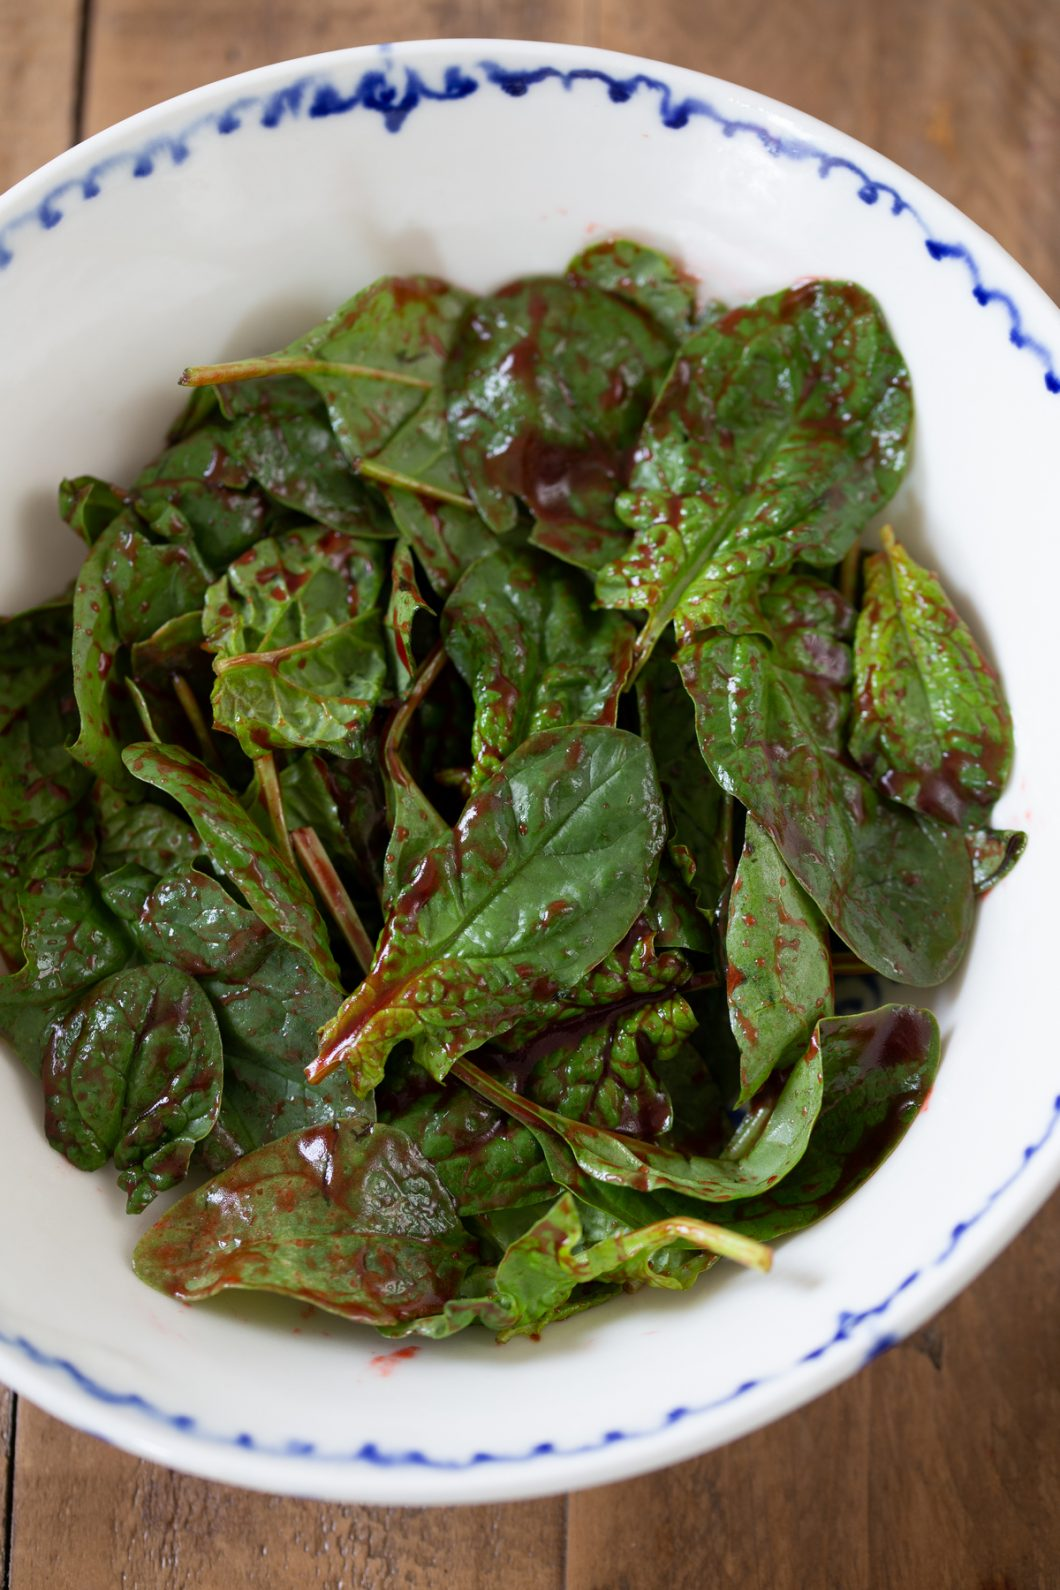 Tossing spinach leaves in dressing.